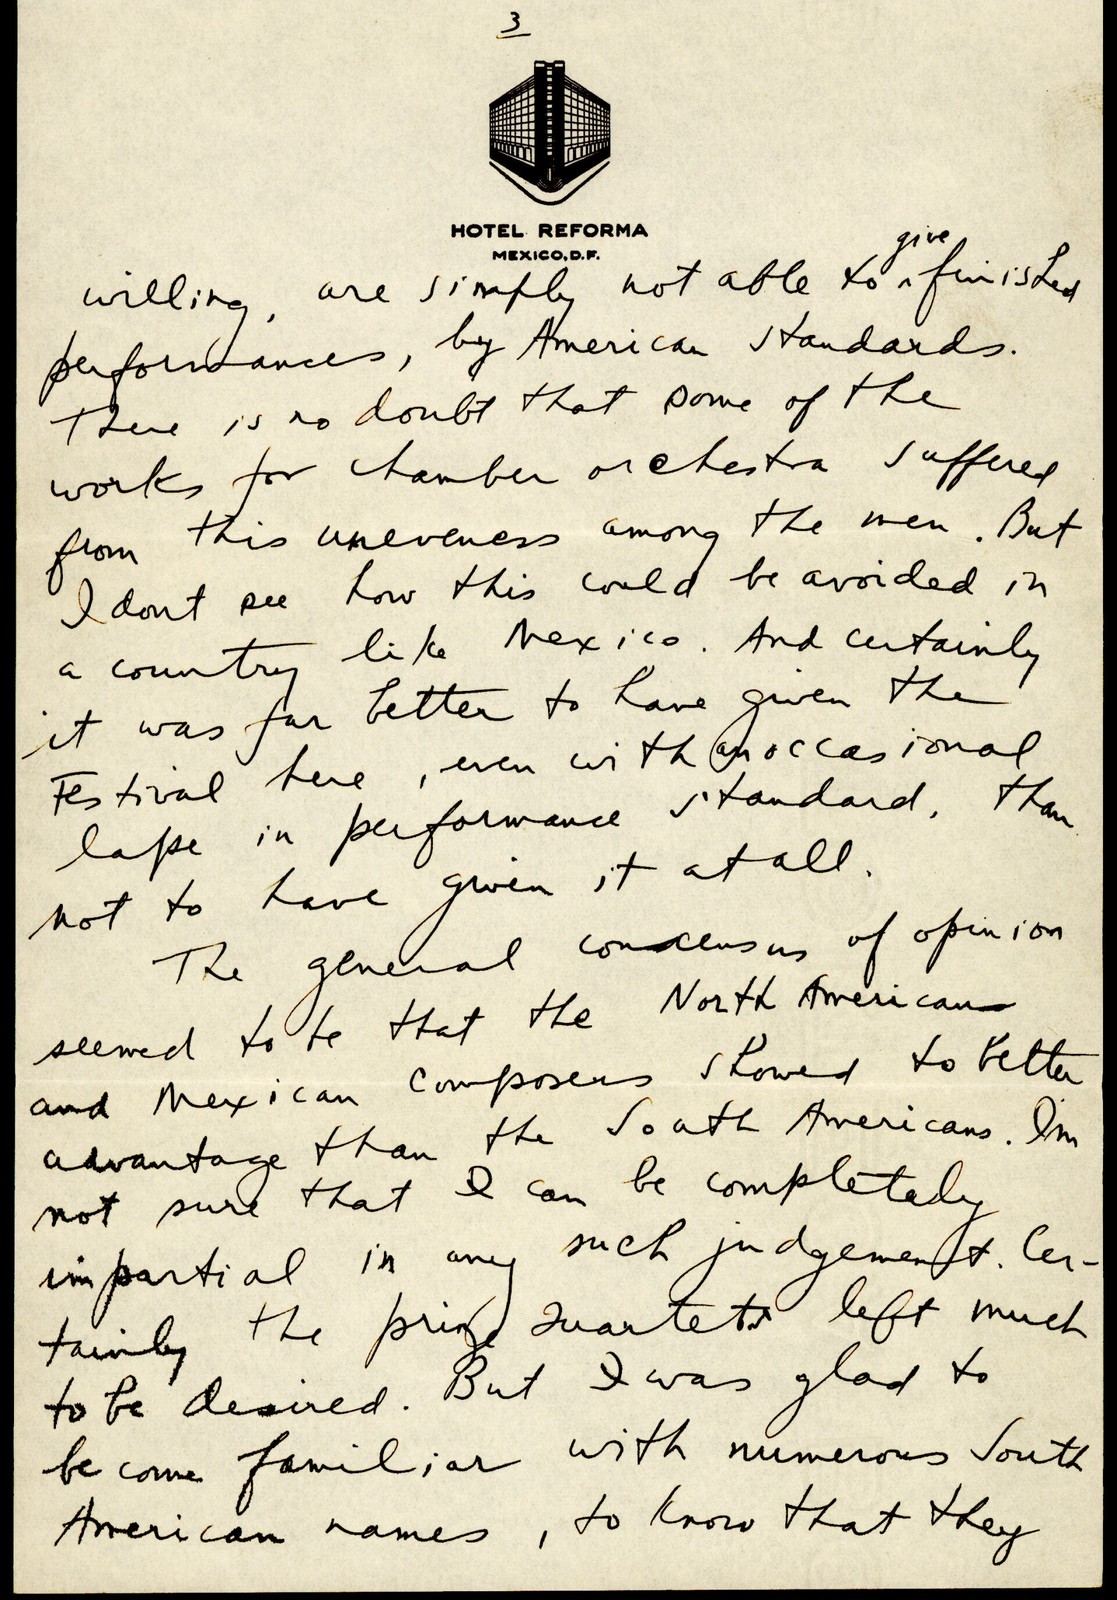 Letter from Aaron Copland to Elizabeth Sprague Coolidge, July 26, 1937.